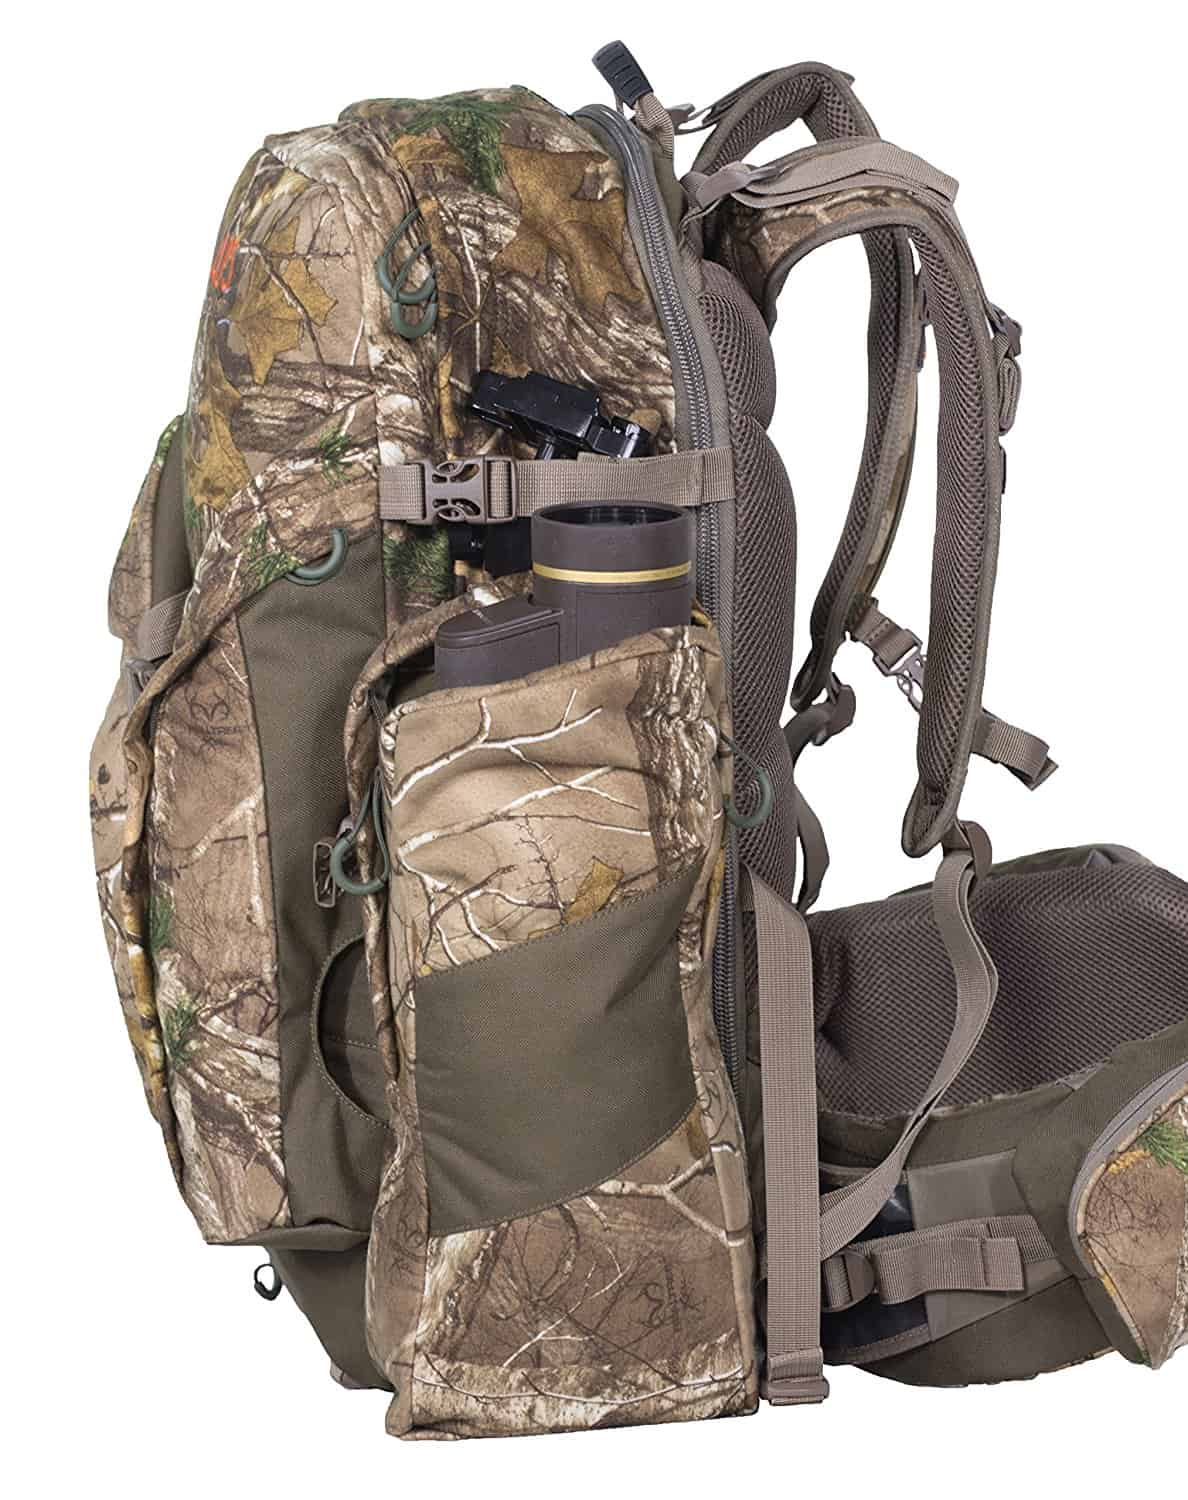 ALPS OutdoorZ Traverse Pack Review